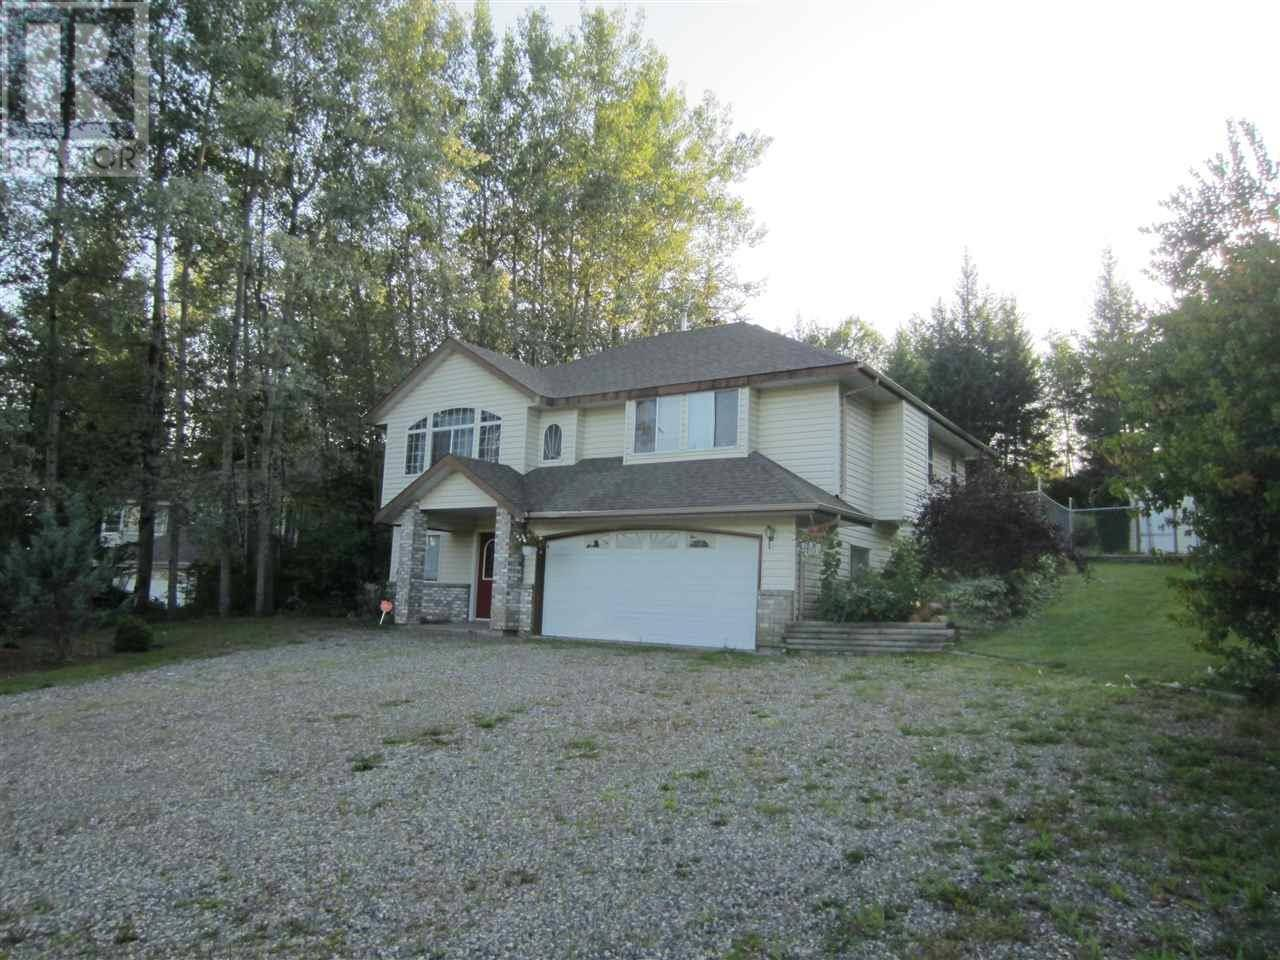 House for sale at 365 Sanderson Rd Quesnel British Columbia - MLS: R2395266